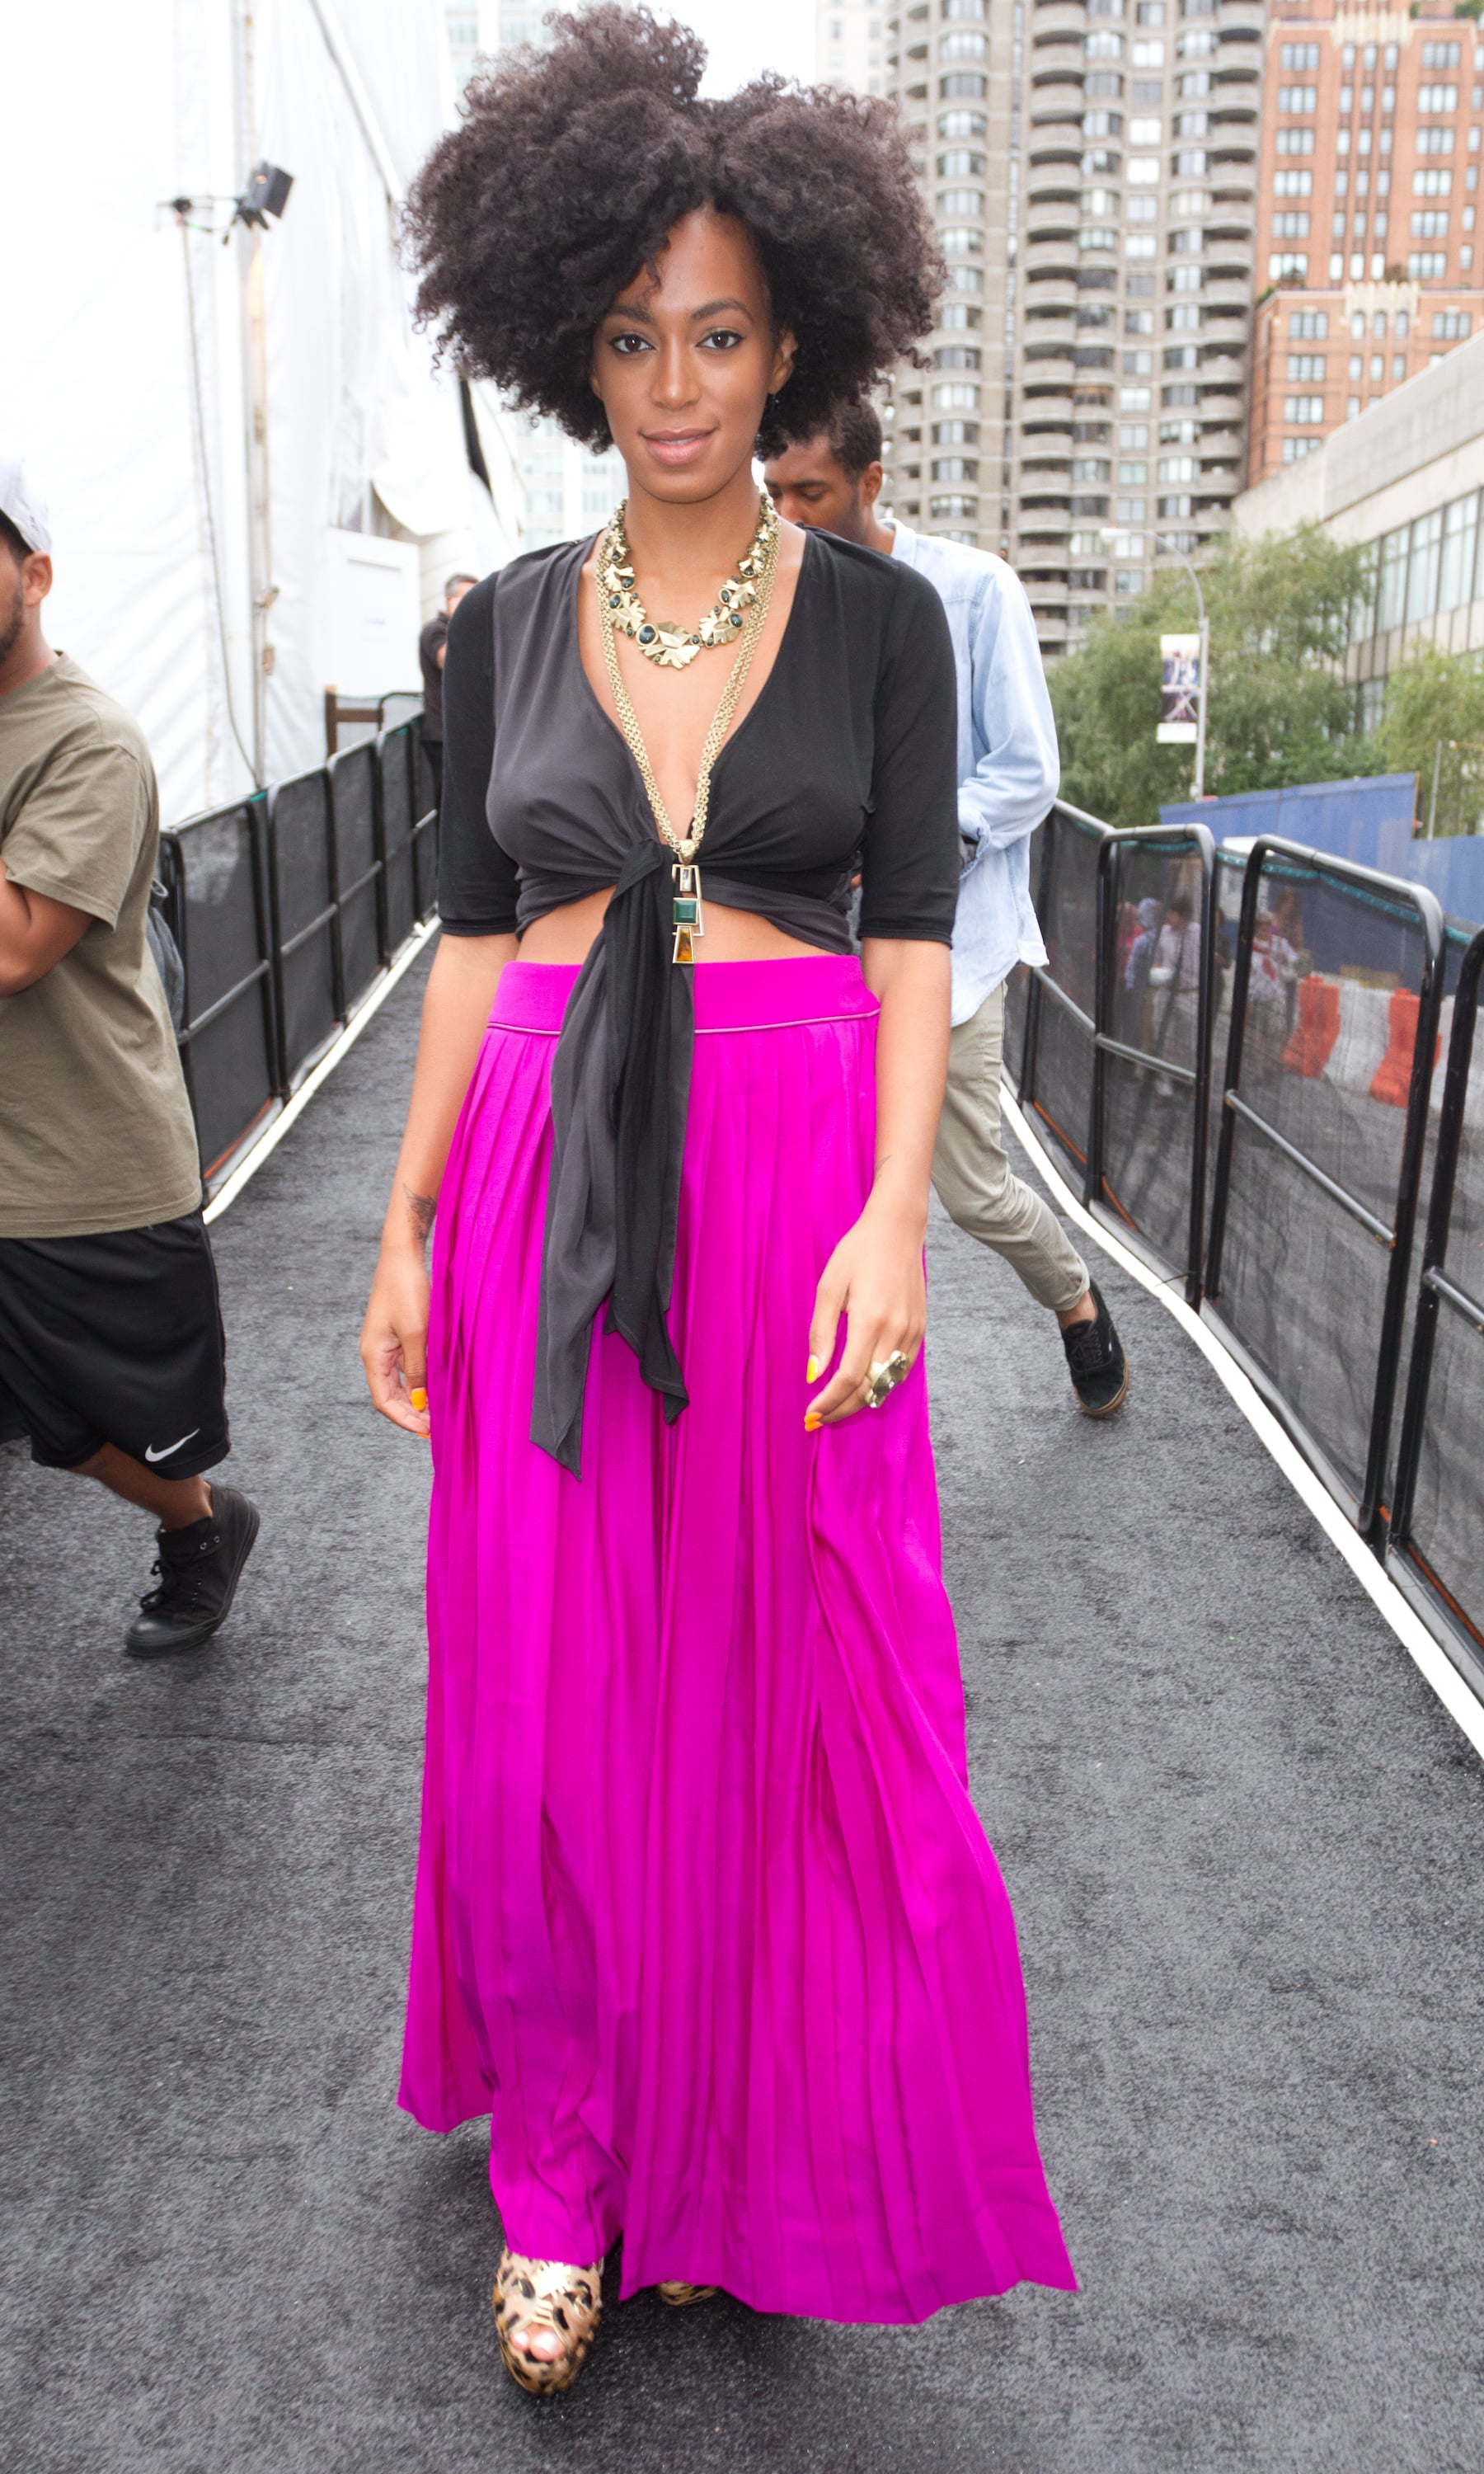 For a fun daytime look that shows a bit of skin, see how Solange does it: she paired a vibrant maxi skirt with a black, tied-up top and leopard-print heels, making for a sexy, attention-getting ensemble in September 2011.